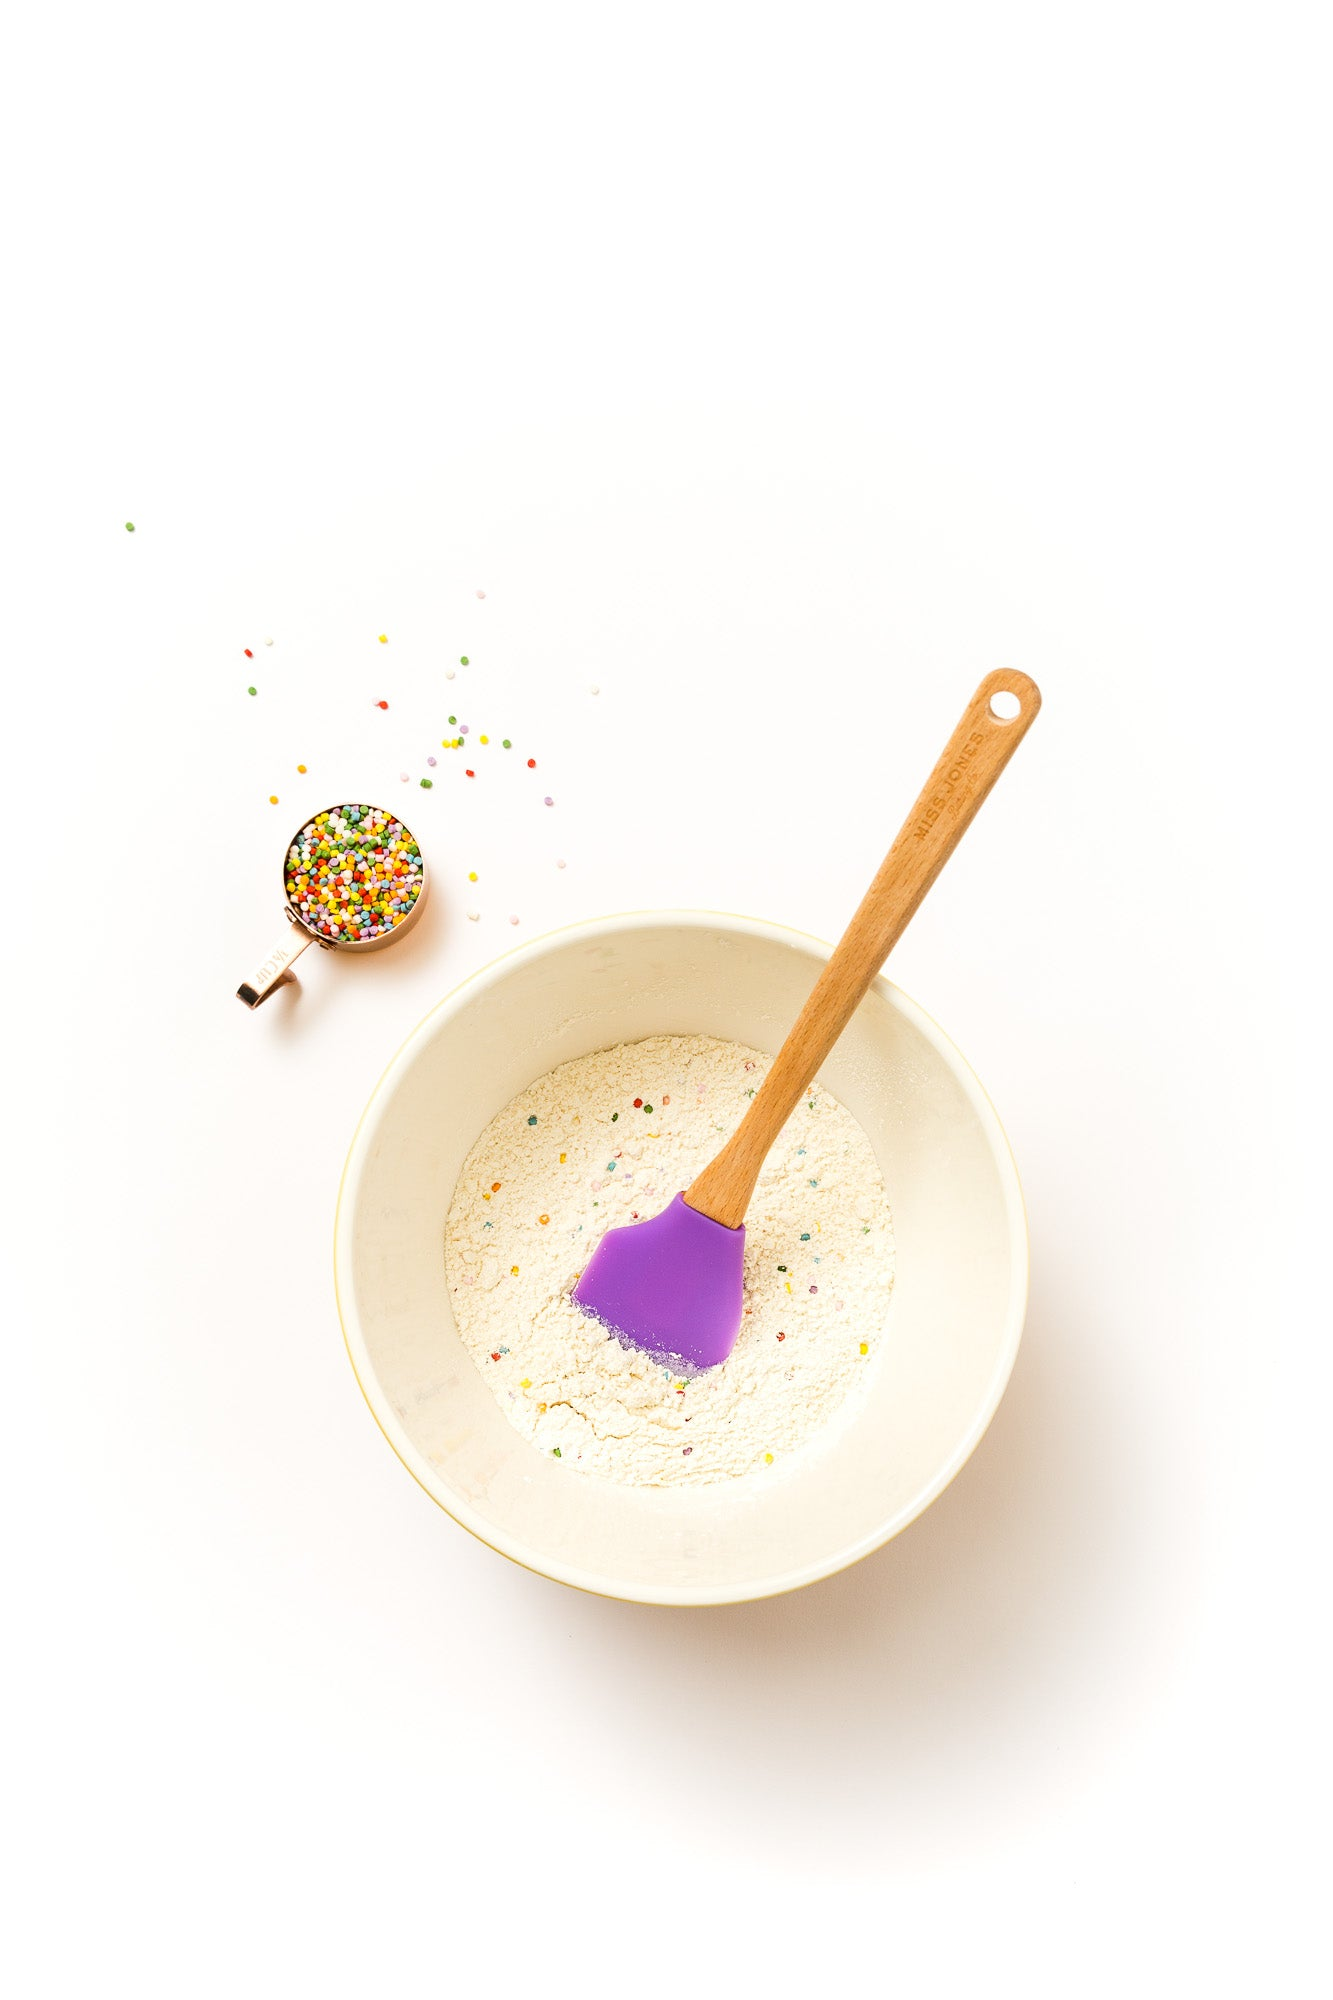 Image from above of Miss Jones Confetti Pop Cookie Mix in a mixing bowl with a purple spatula, next to a cup of rainbow sprinkles